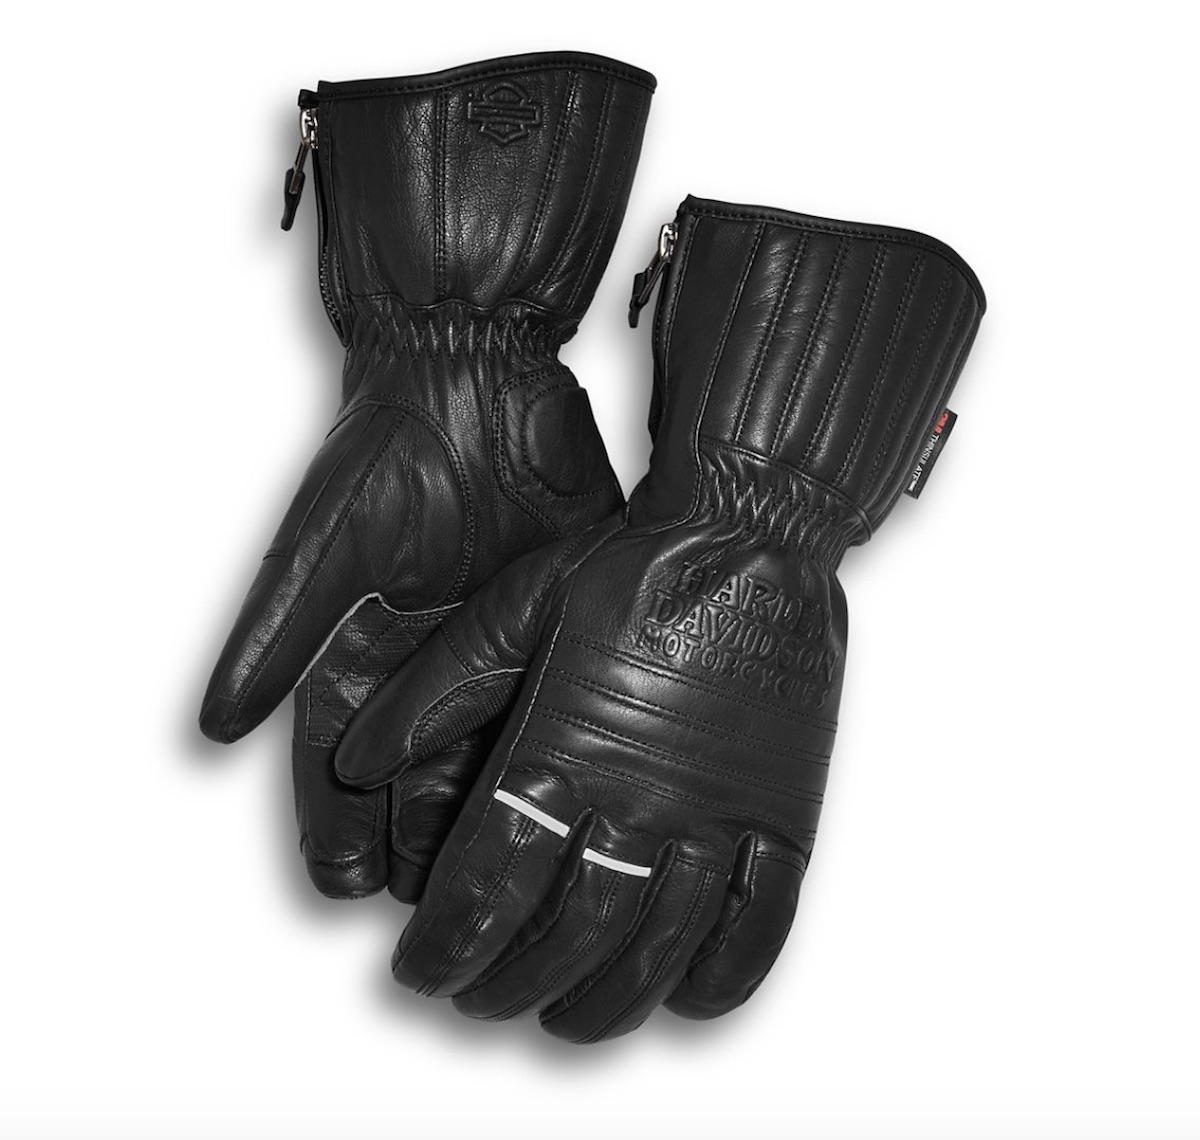 Wilder Insulated Gauntlet Gloves